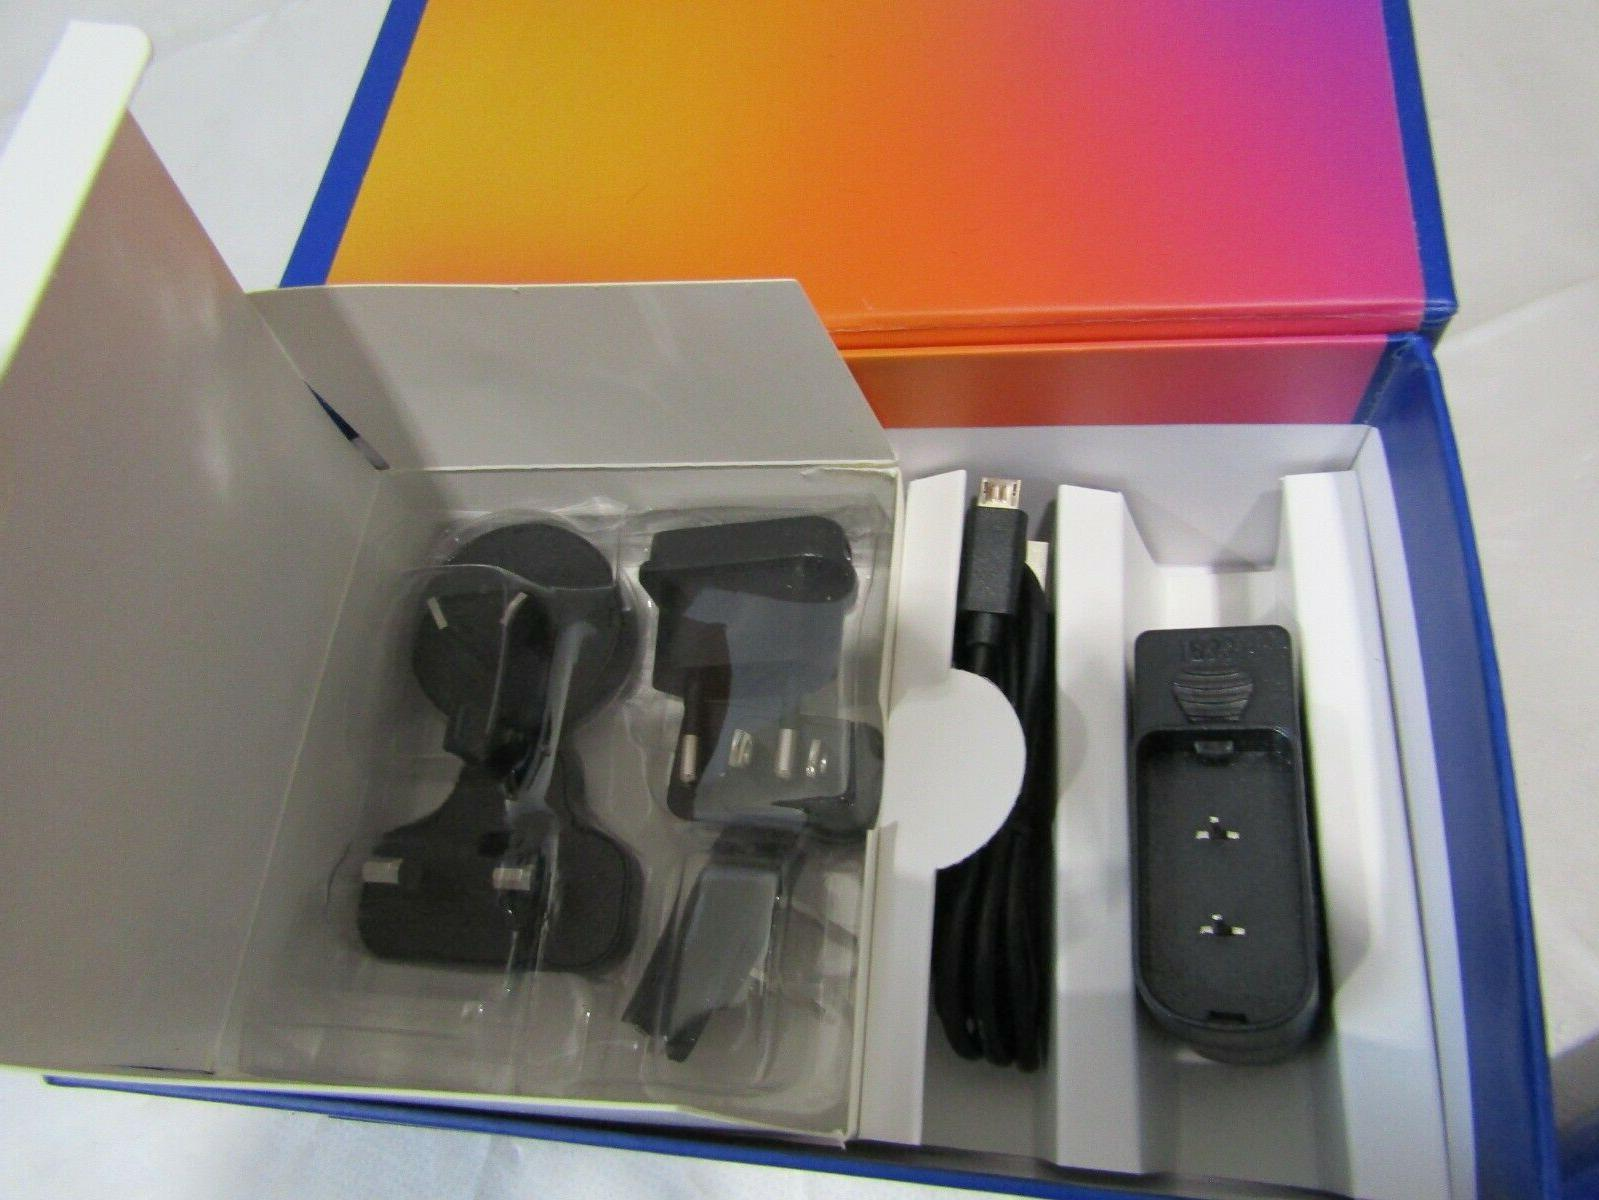 Flir – Compact Thermal Camera with Wi-Fi